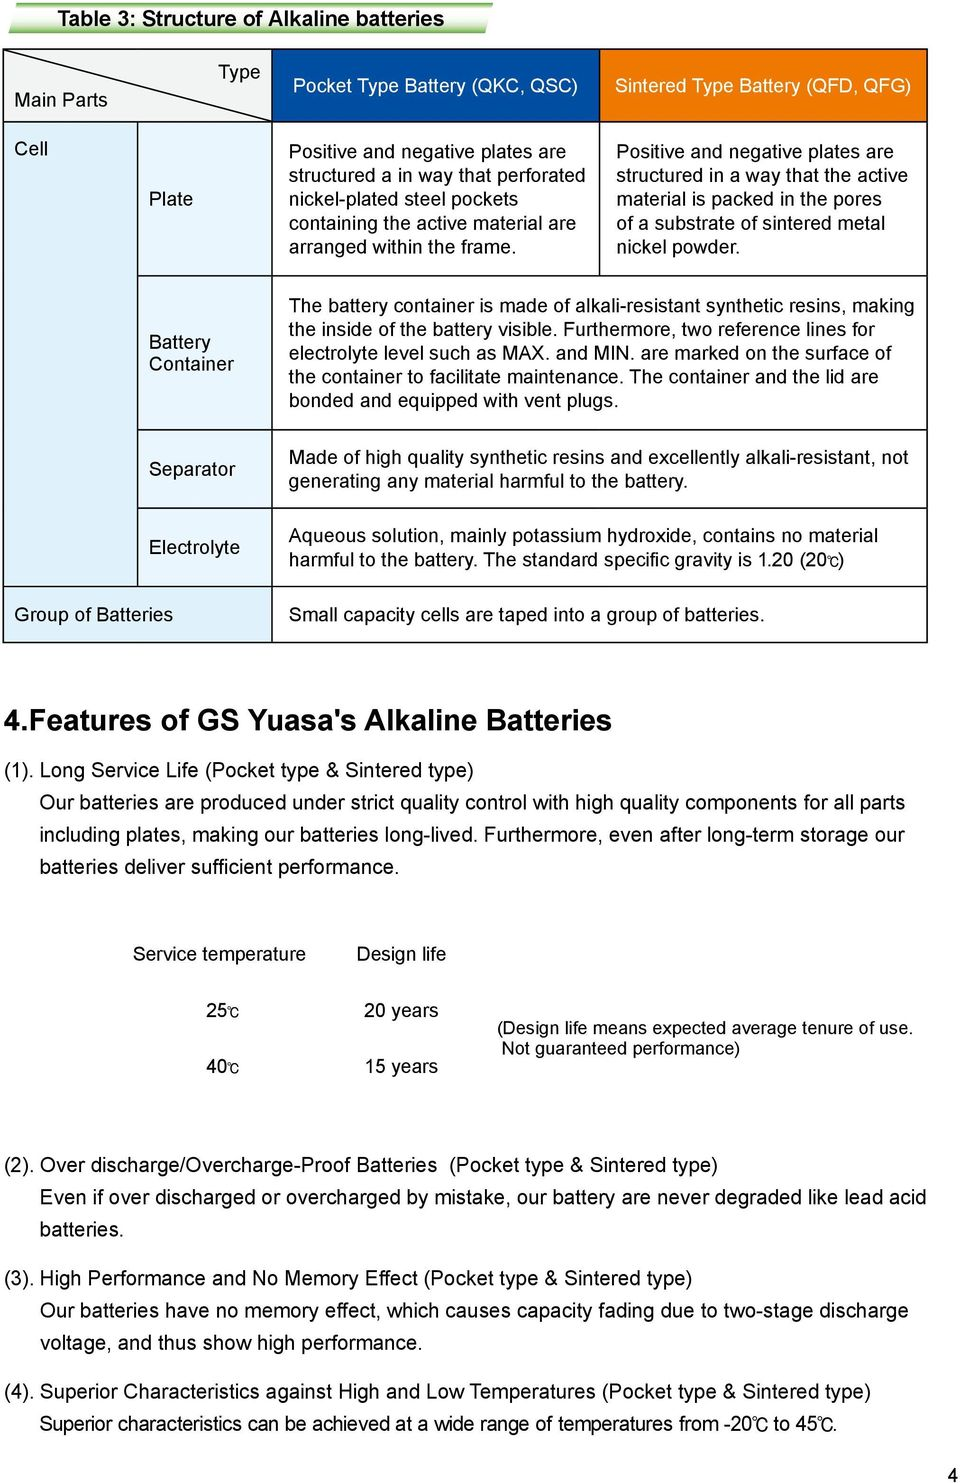 Alkaline Stationary Battery Qkc Qsc Qfd Qfg Pdf Diagram Of Leaving The Two Positive And Negative Plates Are Structured In A Way That Active Material Is Packed